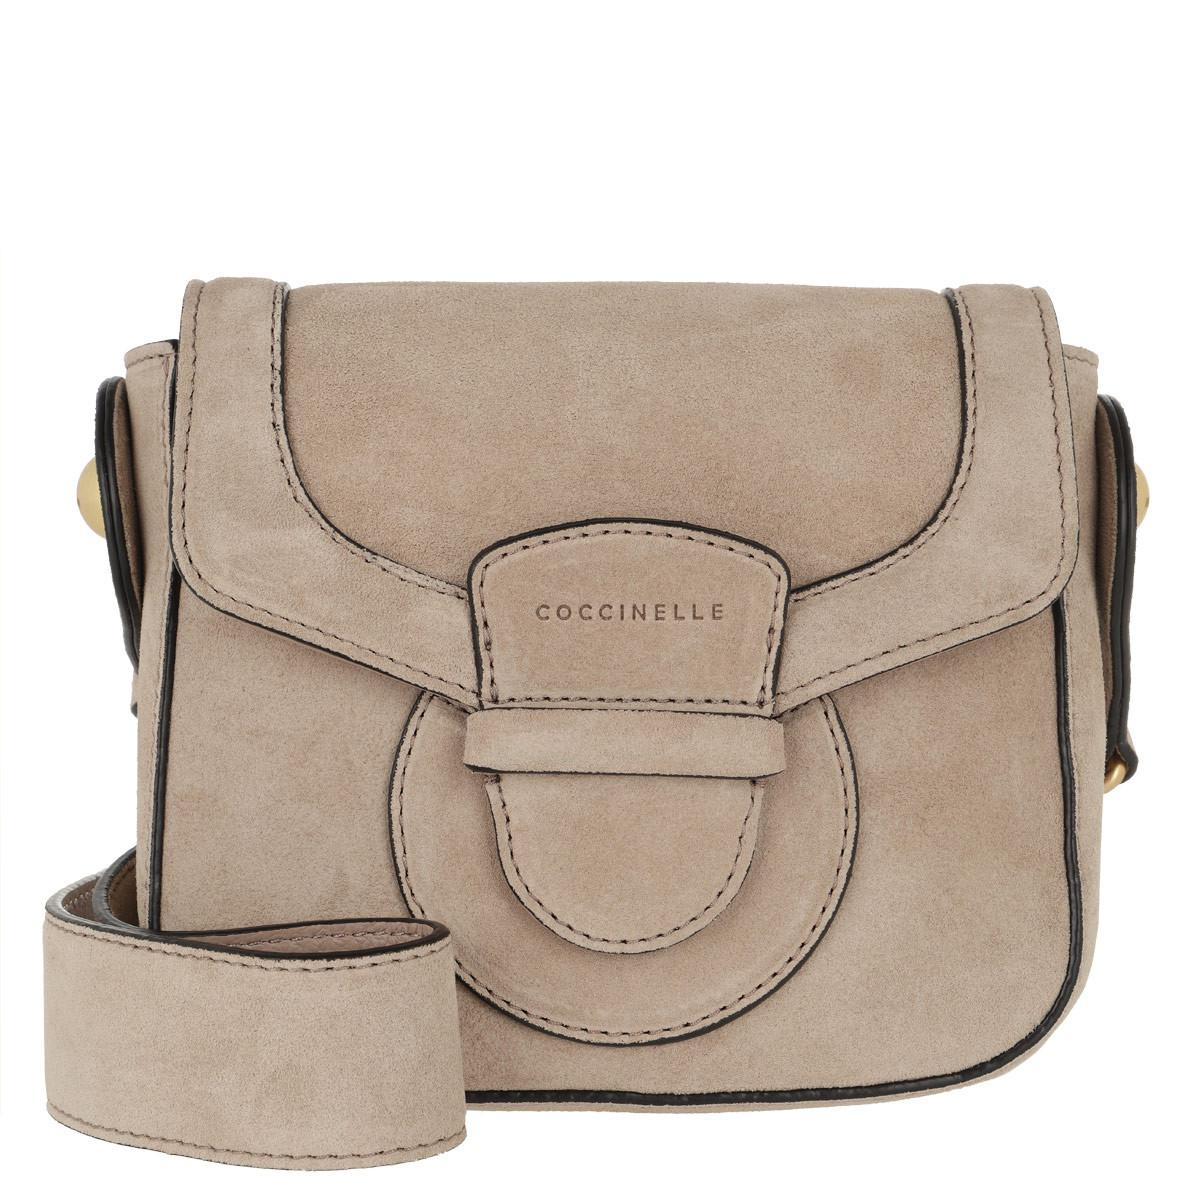 Coccinelle - Natural Vega Suede Crossbody Bag Taupe - Lyst. View fullscreen 184439437ff96